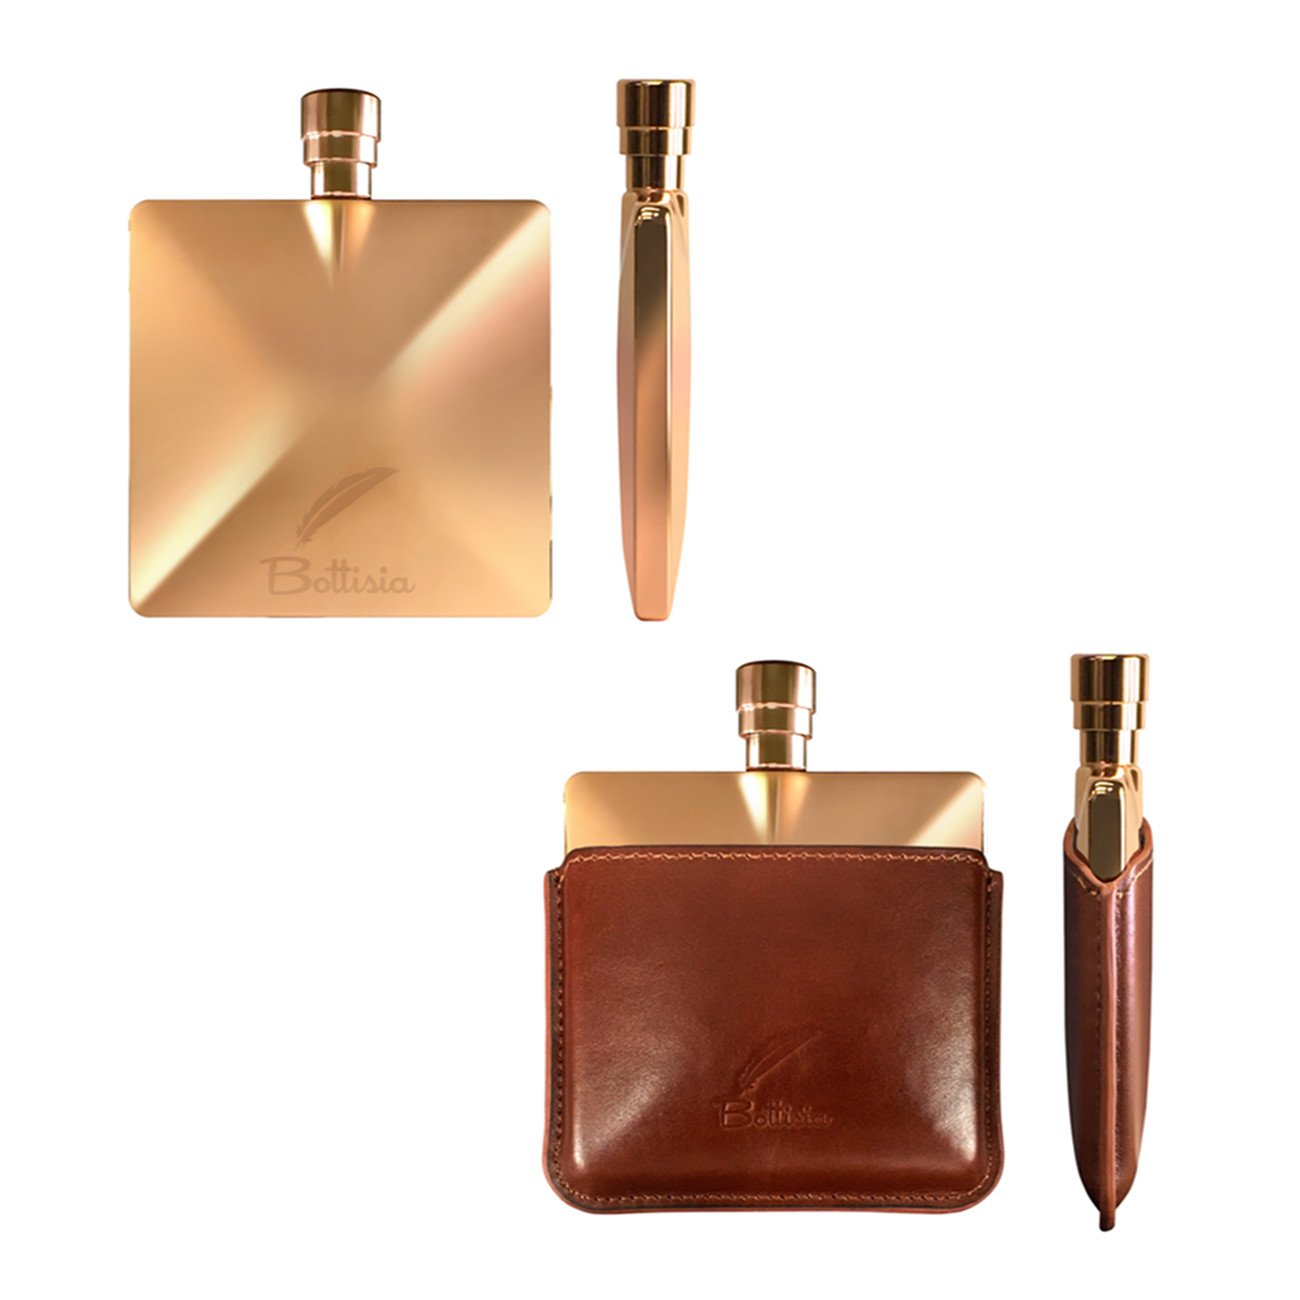 Flasks For Liquor by Bottisia 3 Oz Rose Gold Pocket Hip Flask With Stainless Steel Flask Funnel /& Genuine Leather Pouch a Luxury Fathers Day Gift Set For Men